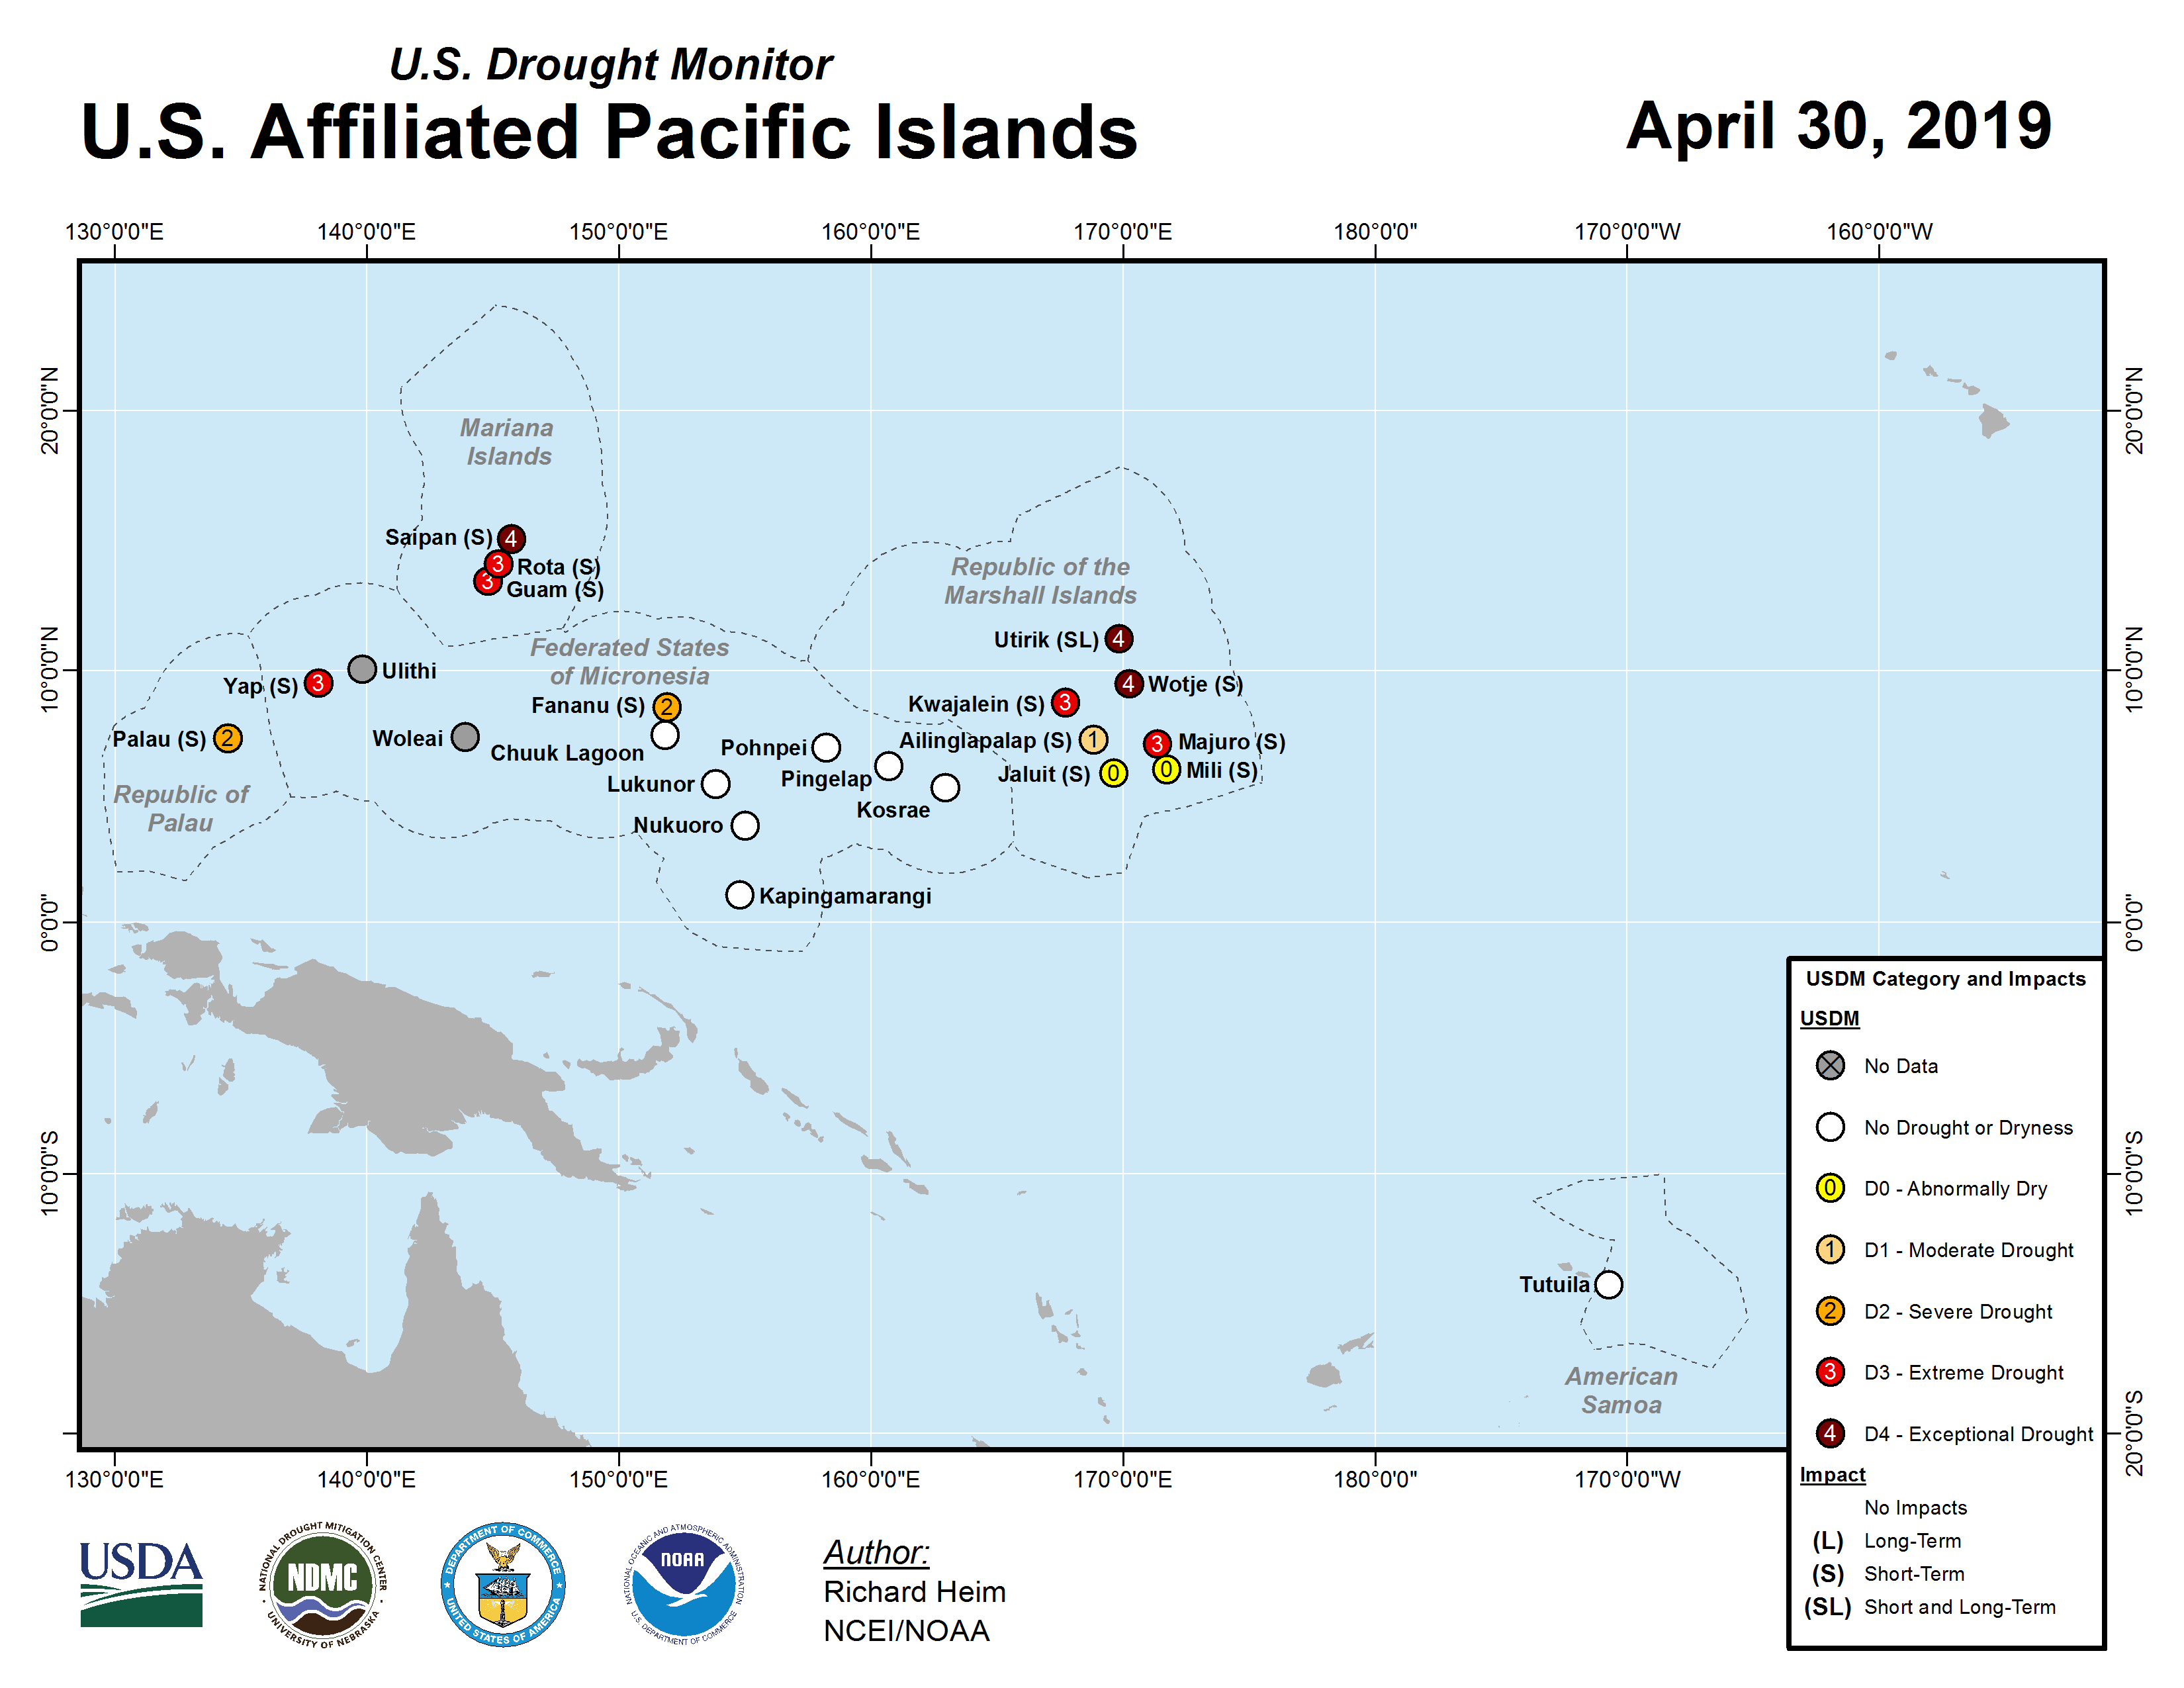 Map showing drought in the U.S.-Affiliated Pacific Islands